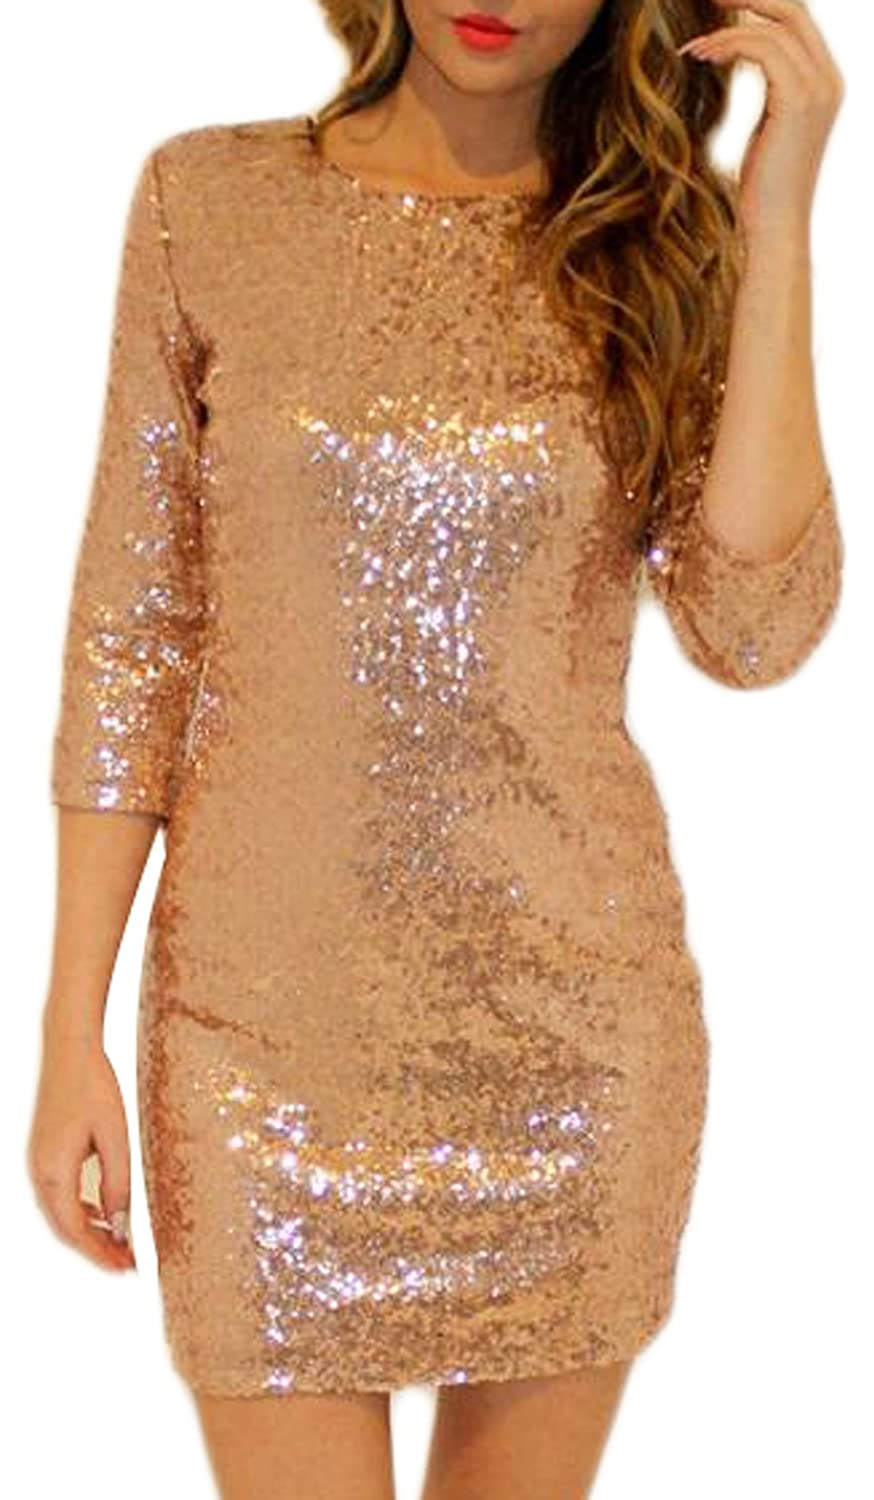 XTX Women Sequin Solid See Through Sexy Party Dress L Gold